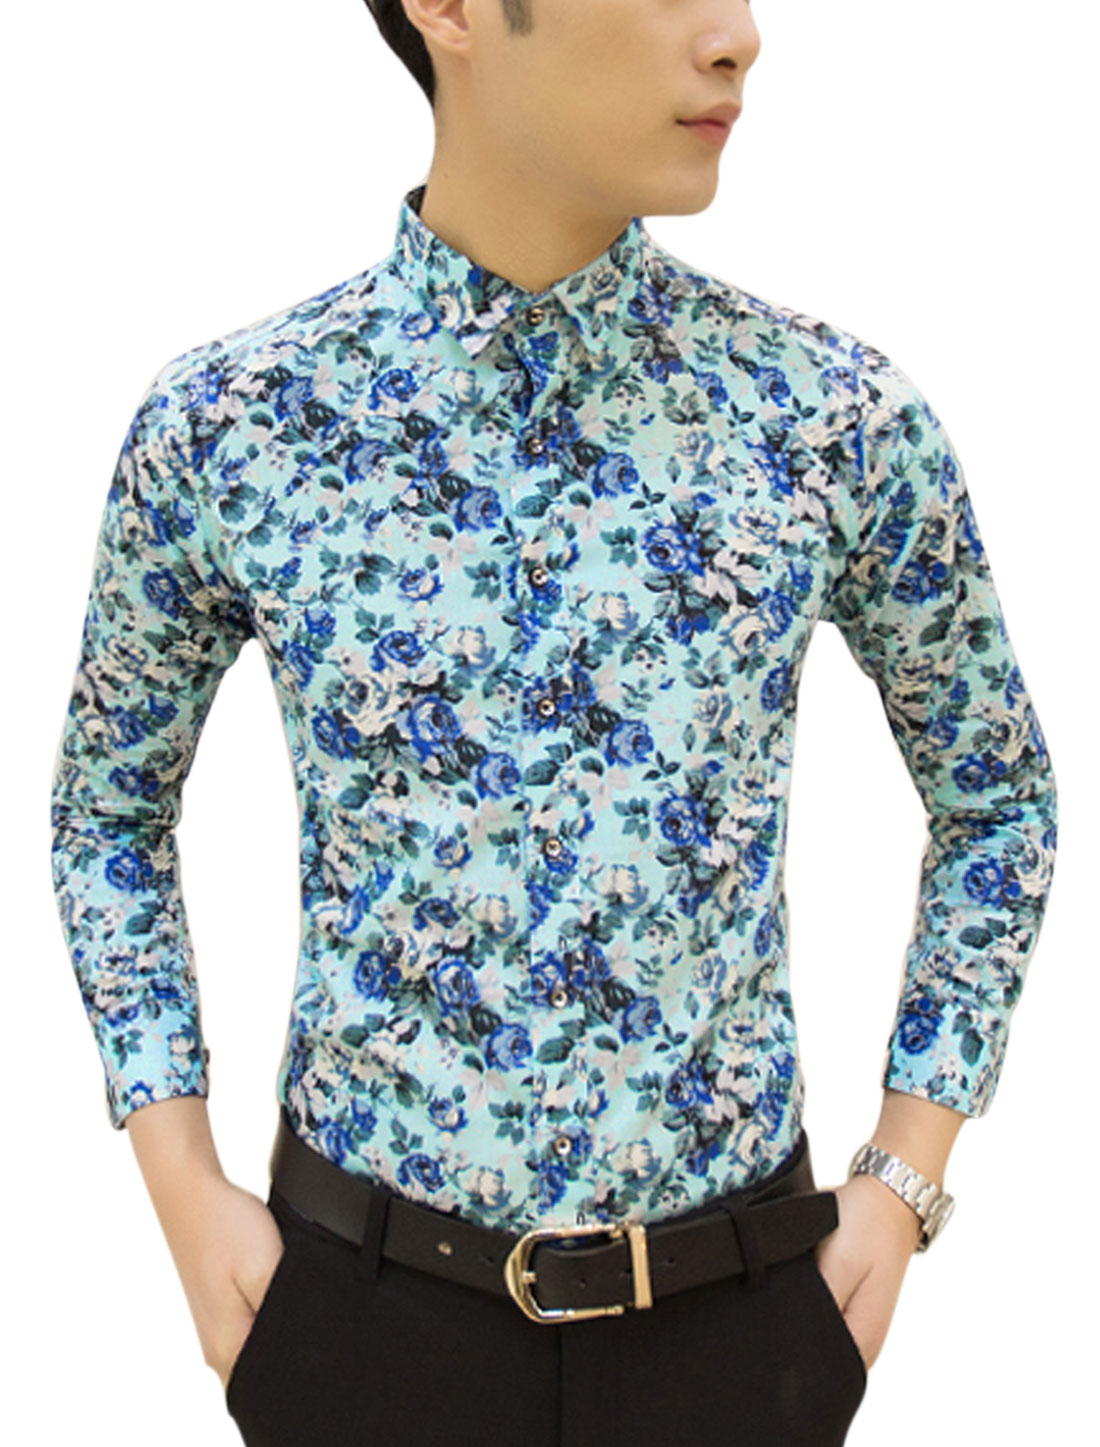 Man Floral Prints Long Sleeves Slim Fit Casual Shirt Light Blue M